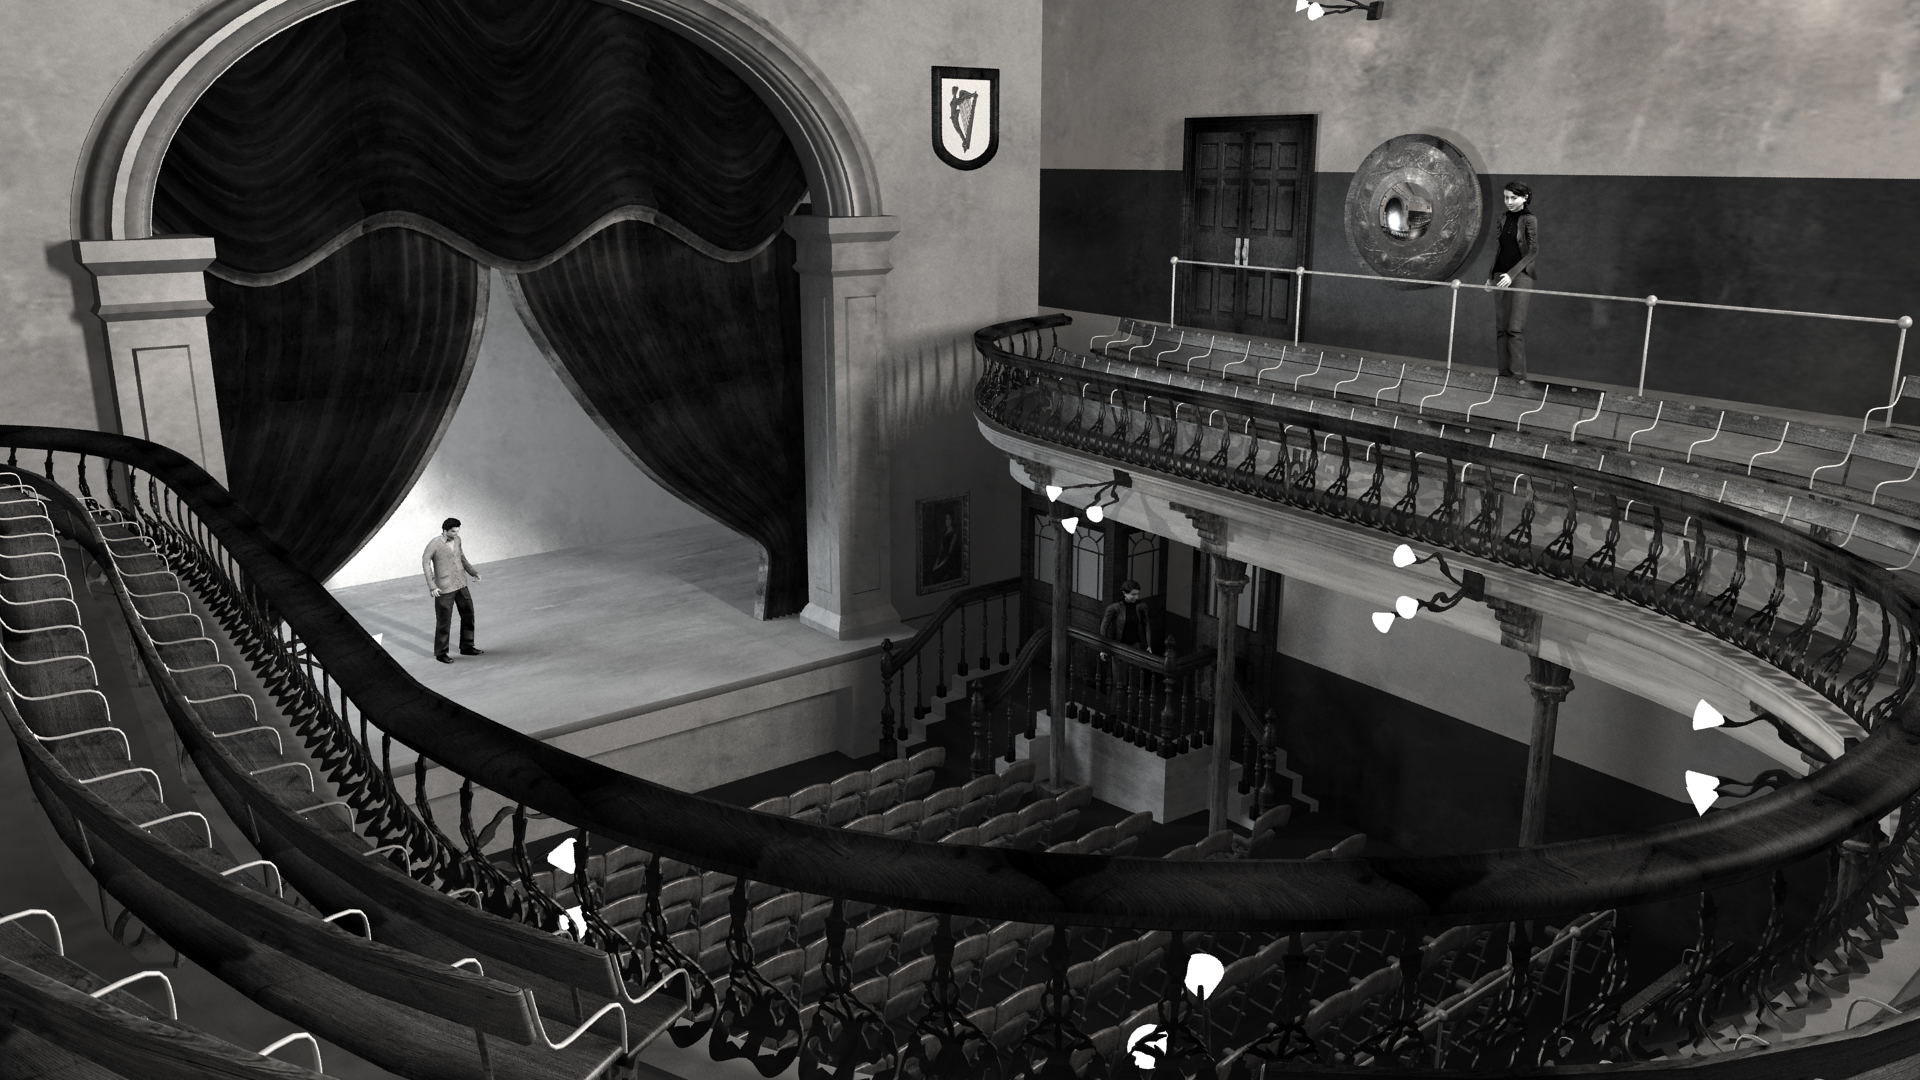 View from Balcony of Abbey Theatre, 1904. Digital model by Hugh Denard (research) and Niall Ó hOisín/Noho (modelling), 2011.